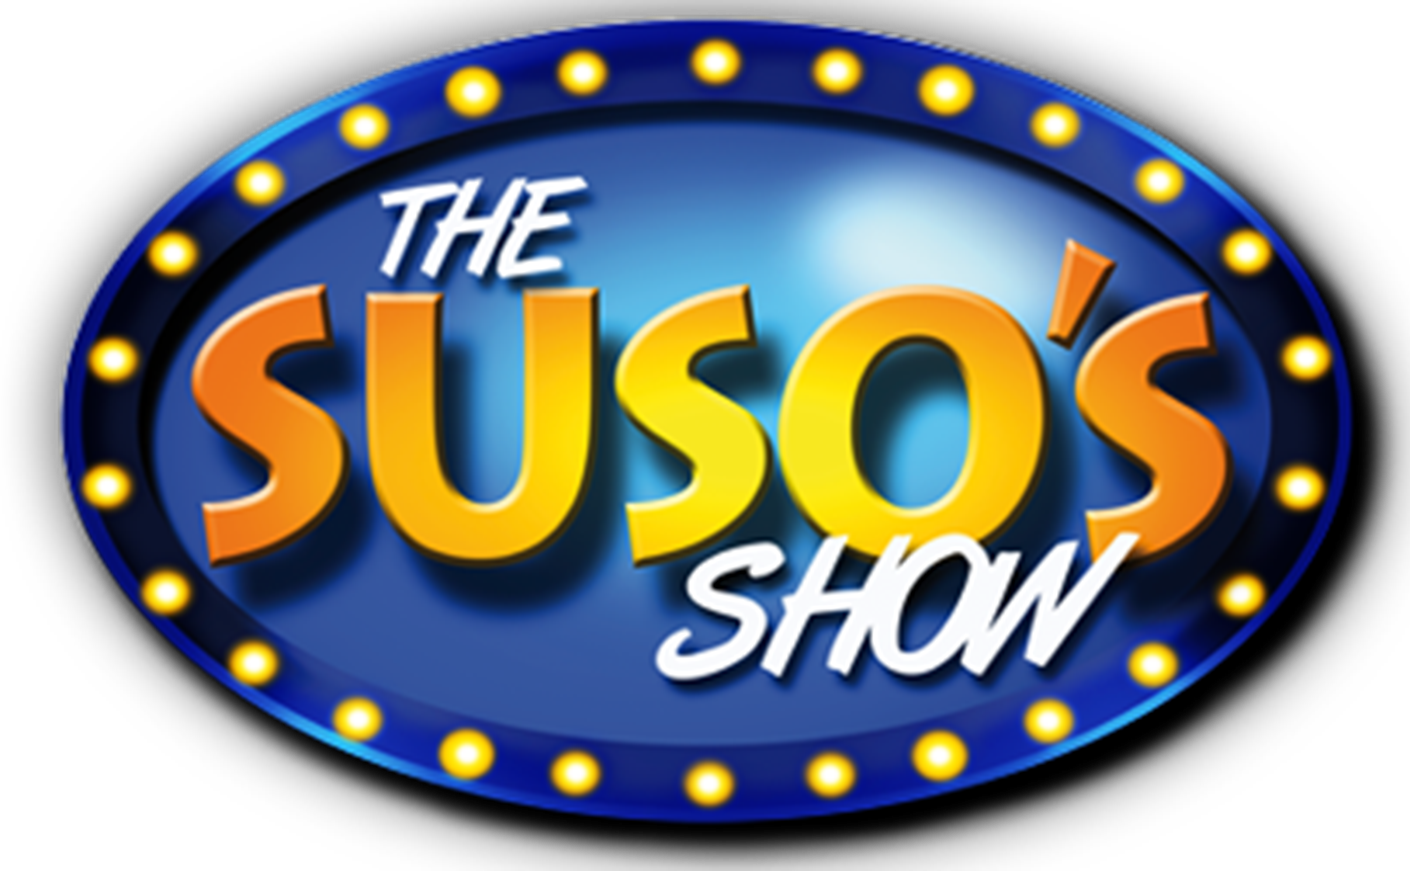 The Suso's Show